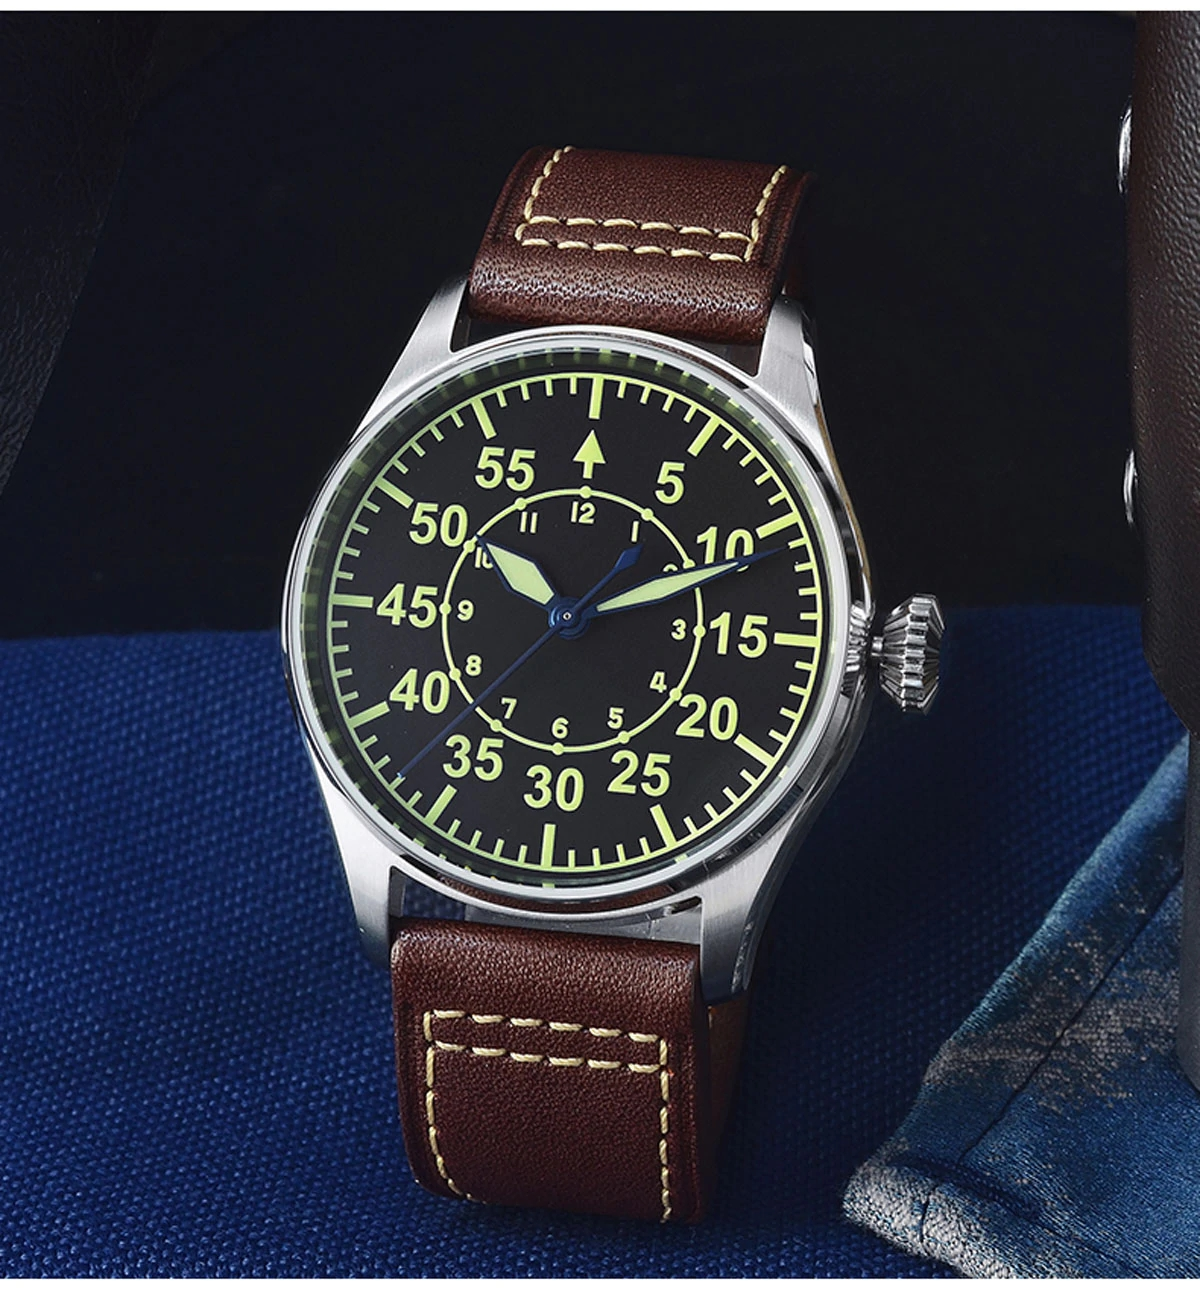 San Martin SN060-G Flieger-B Pilot's Series Watch